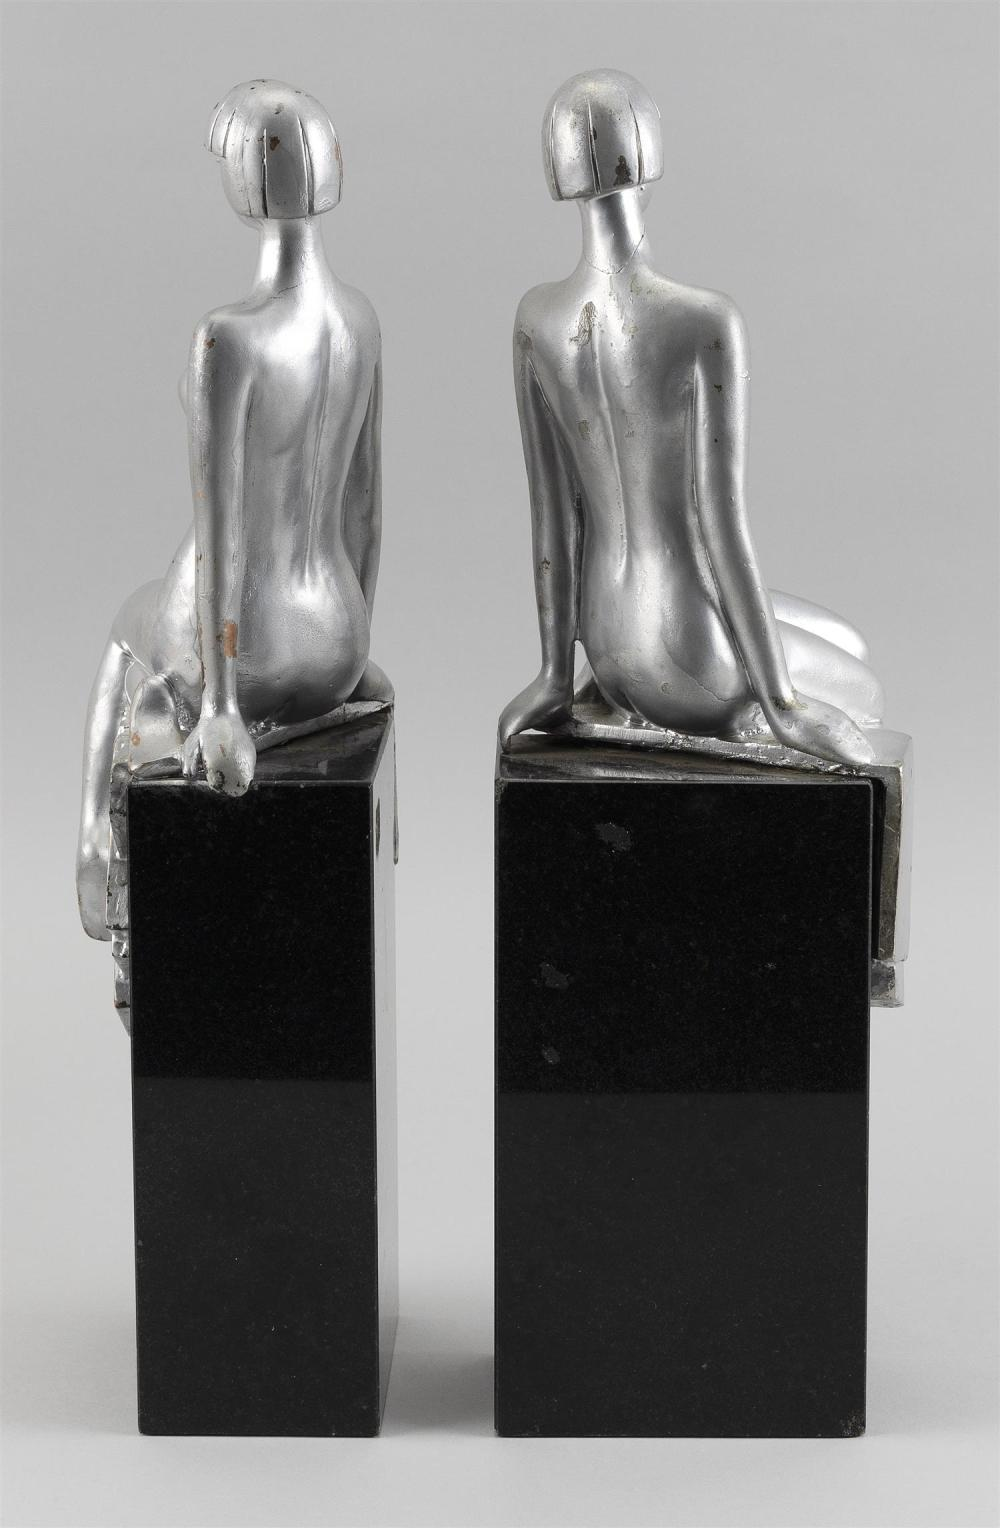 PAIR OF ART DECO-STYLE BOOKENDS Silvered composite nude women seated on black granite bases. Unmarked. Heights 14.5